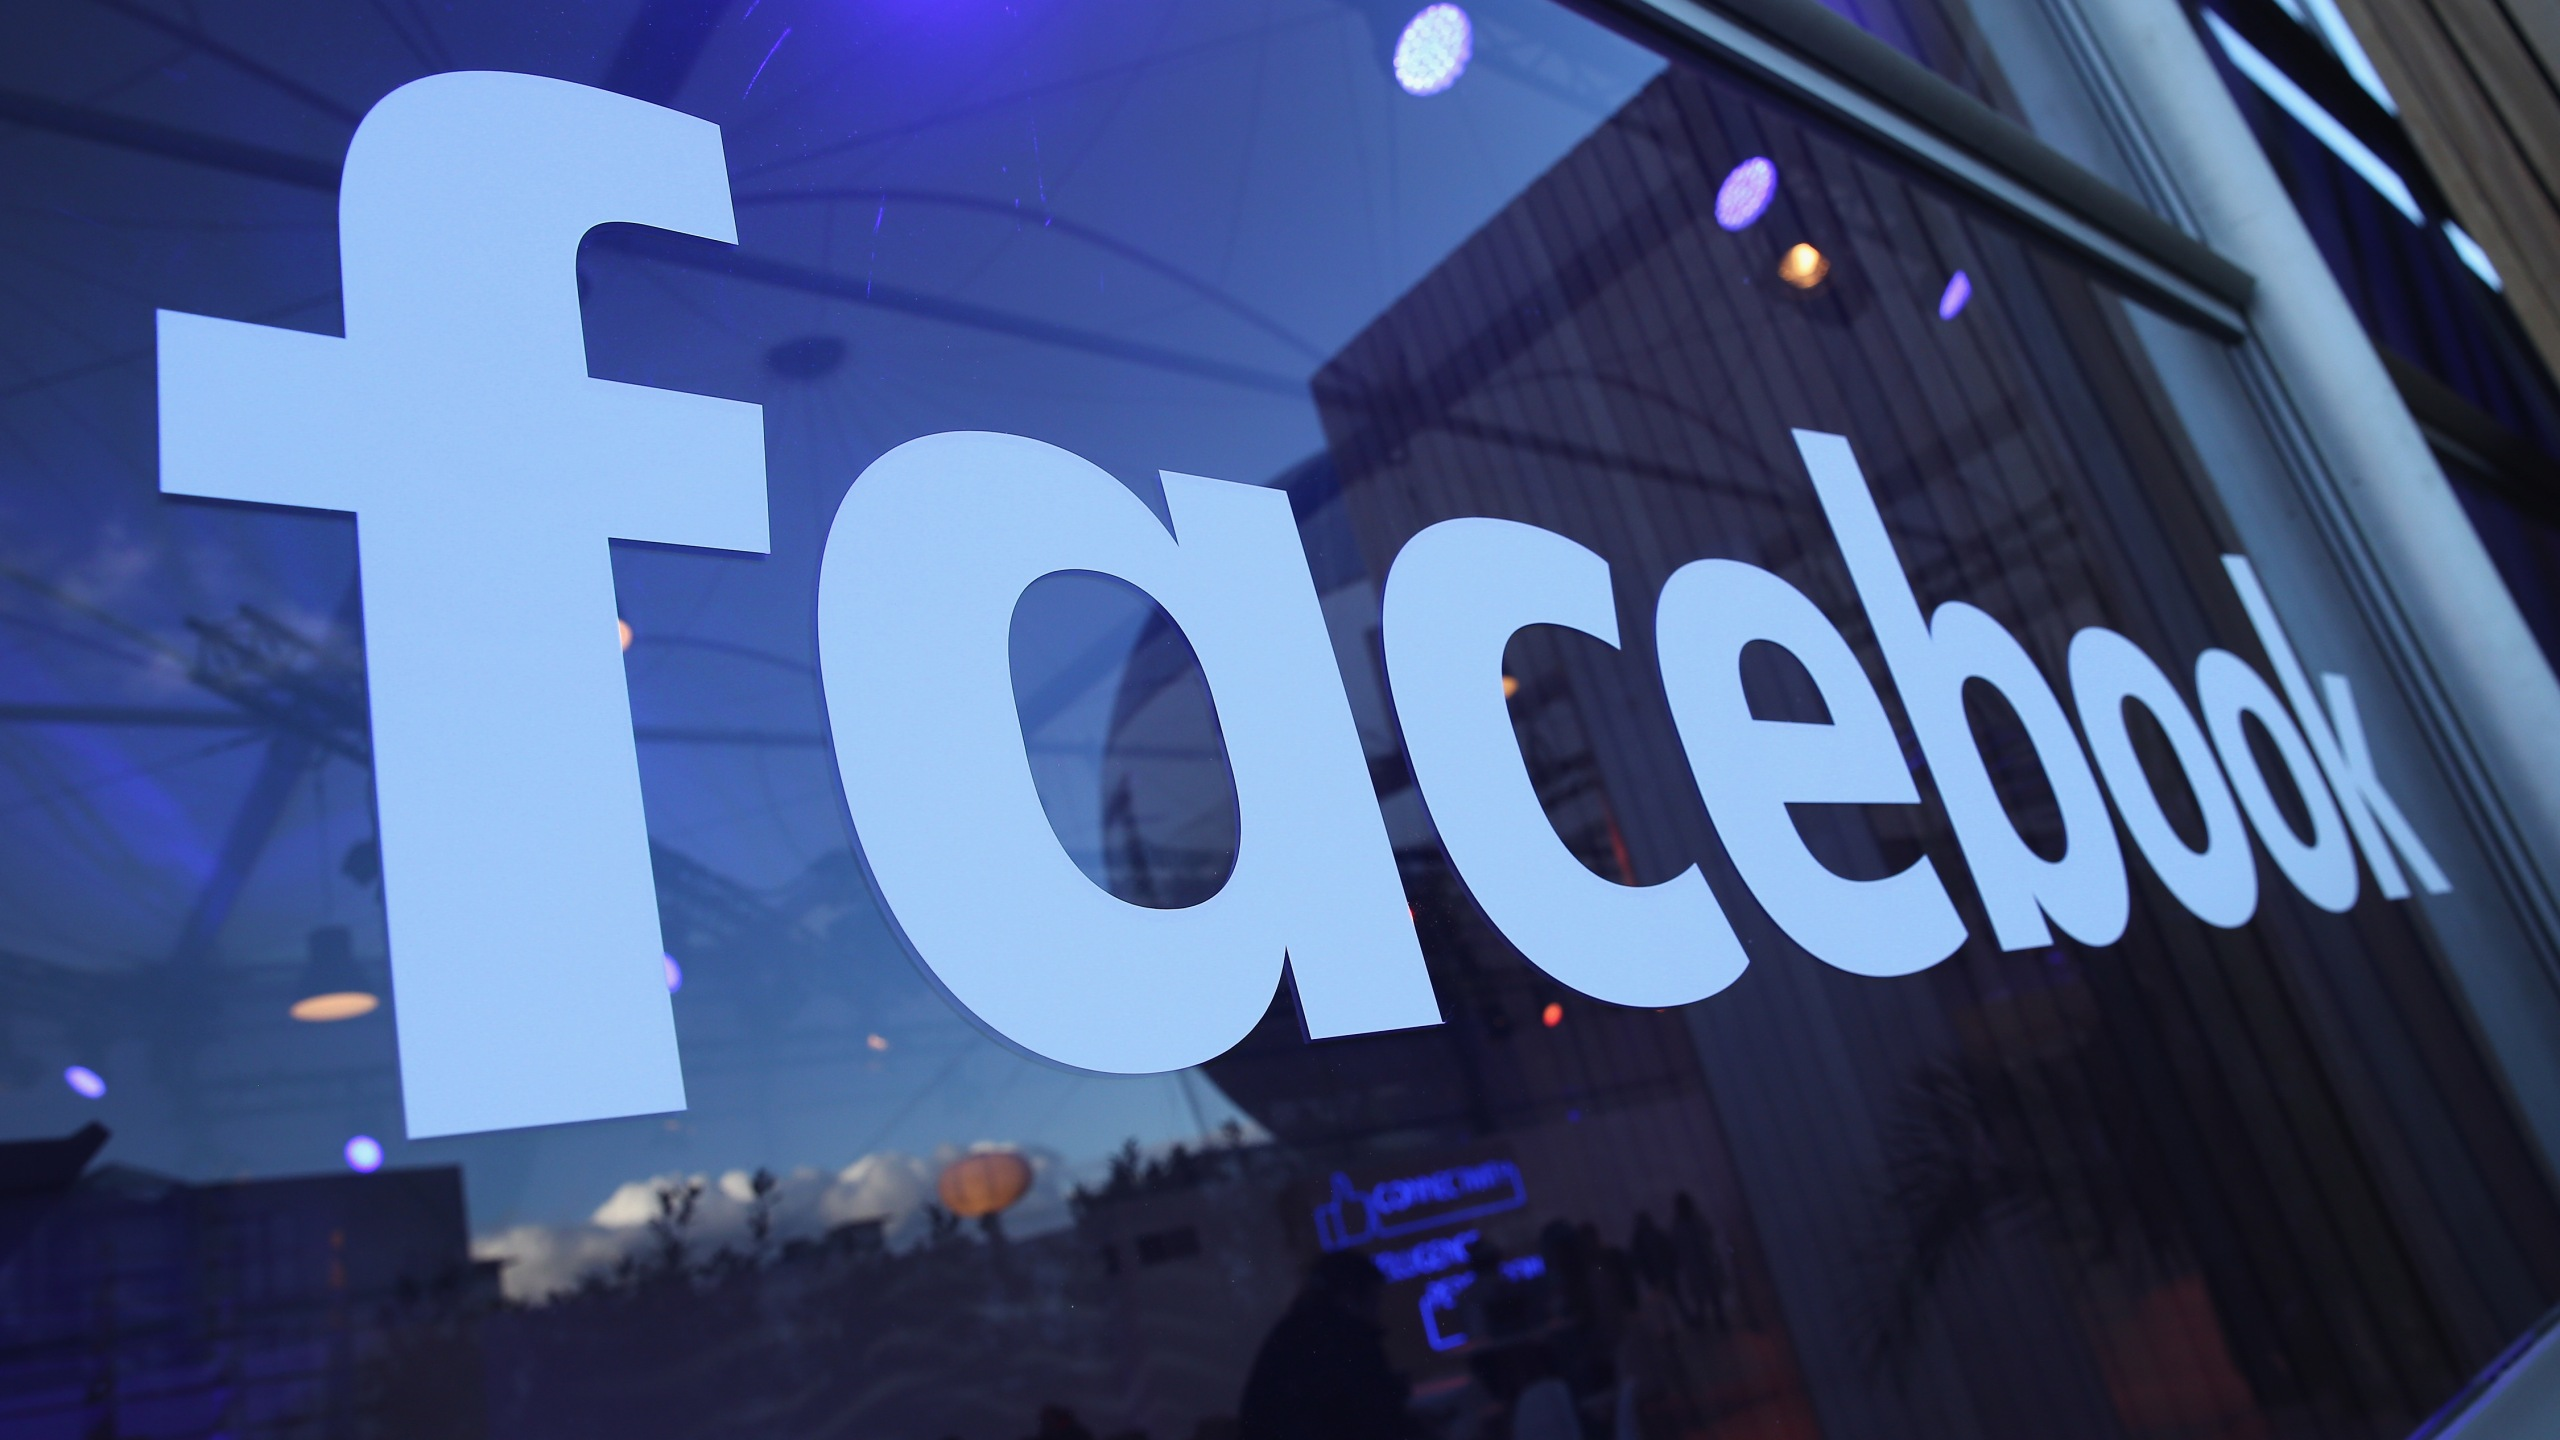 The Facebook logo is displayed at the Facebook Innovation Hub on February 24, 2016 in Berlin, Germany. (Credit: Sean Gallup/Getty Images)